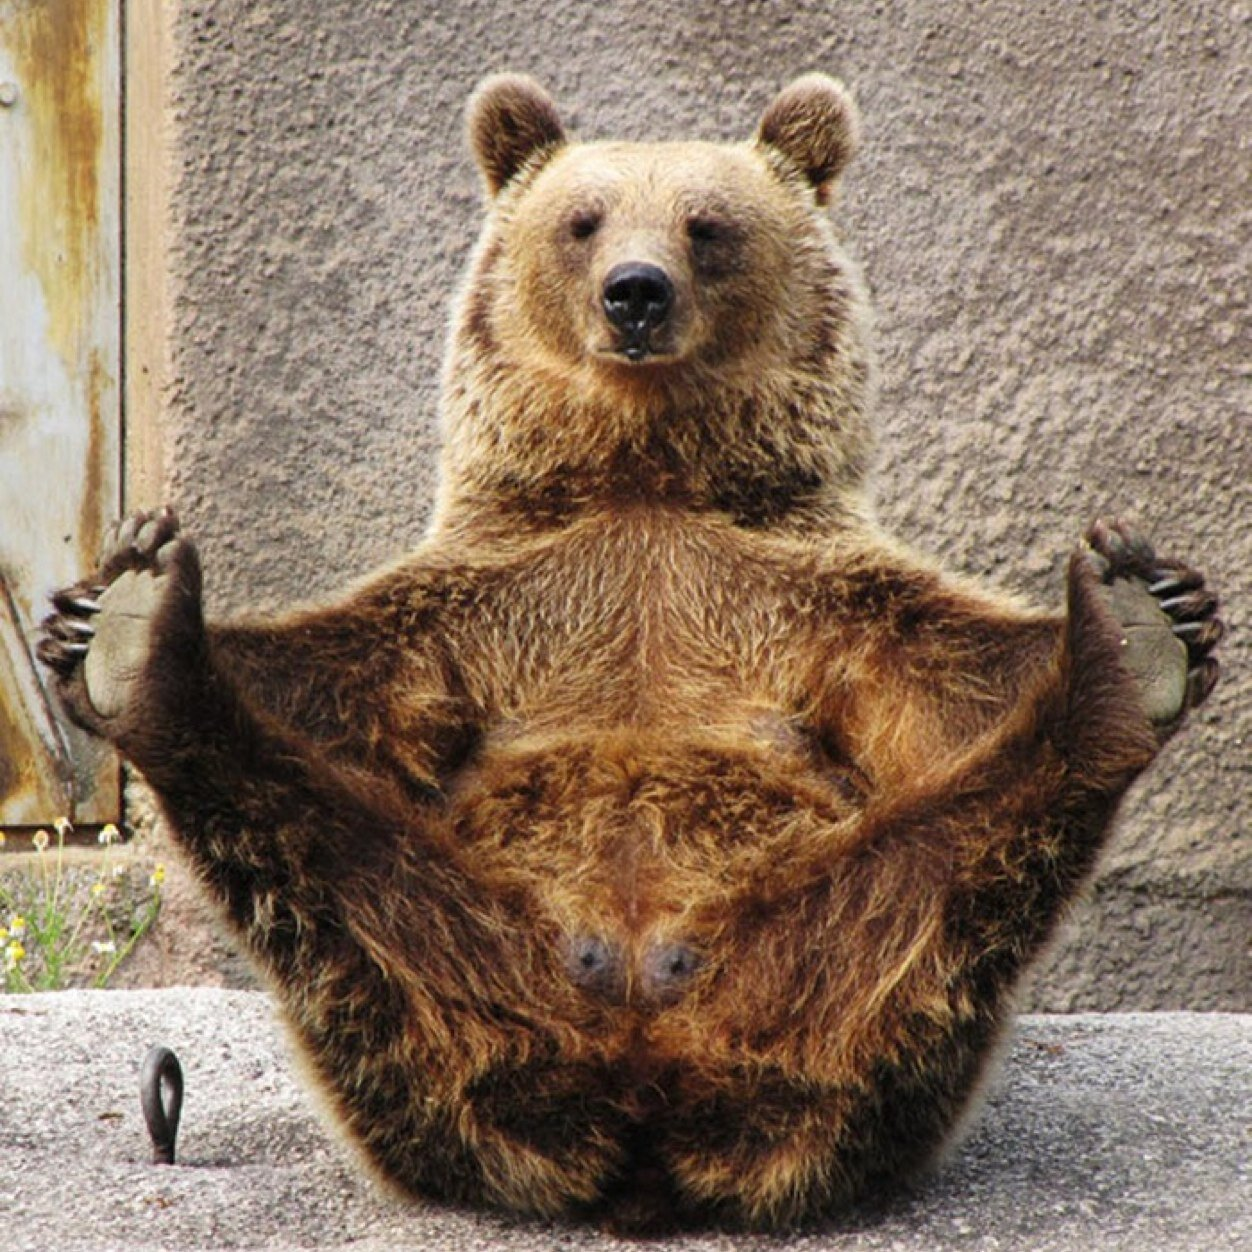 bear wrongs patiently pictures - 768×778